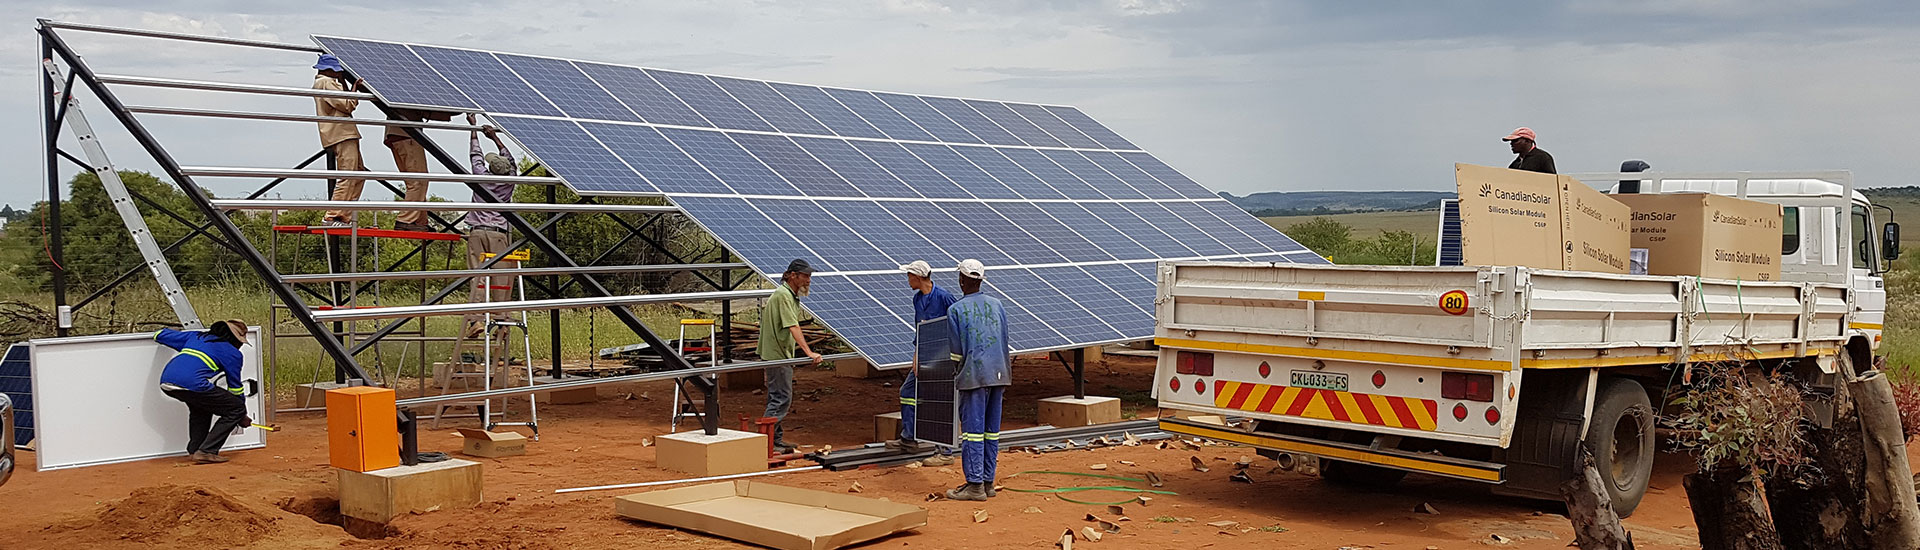 Eco Trades: Solar Power Systems for Off Grid/Remote (Project: Stuck in the Mud, Bloemfontein)